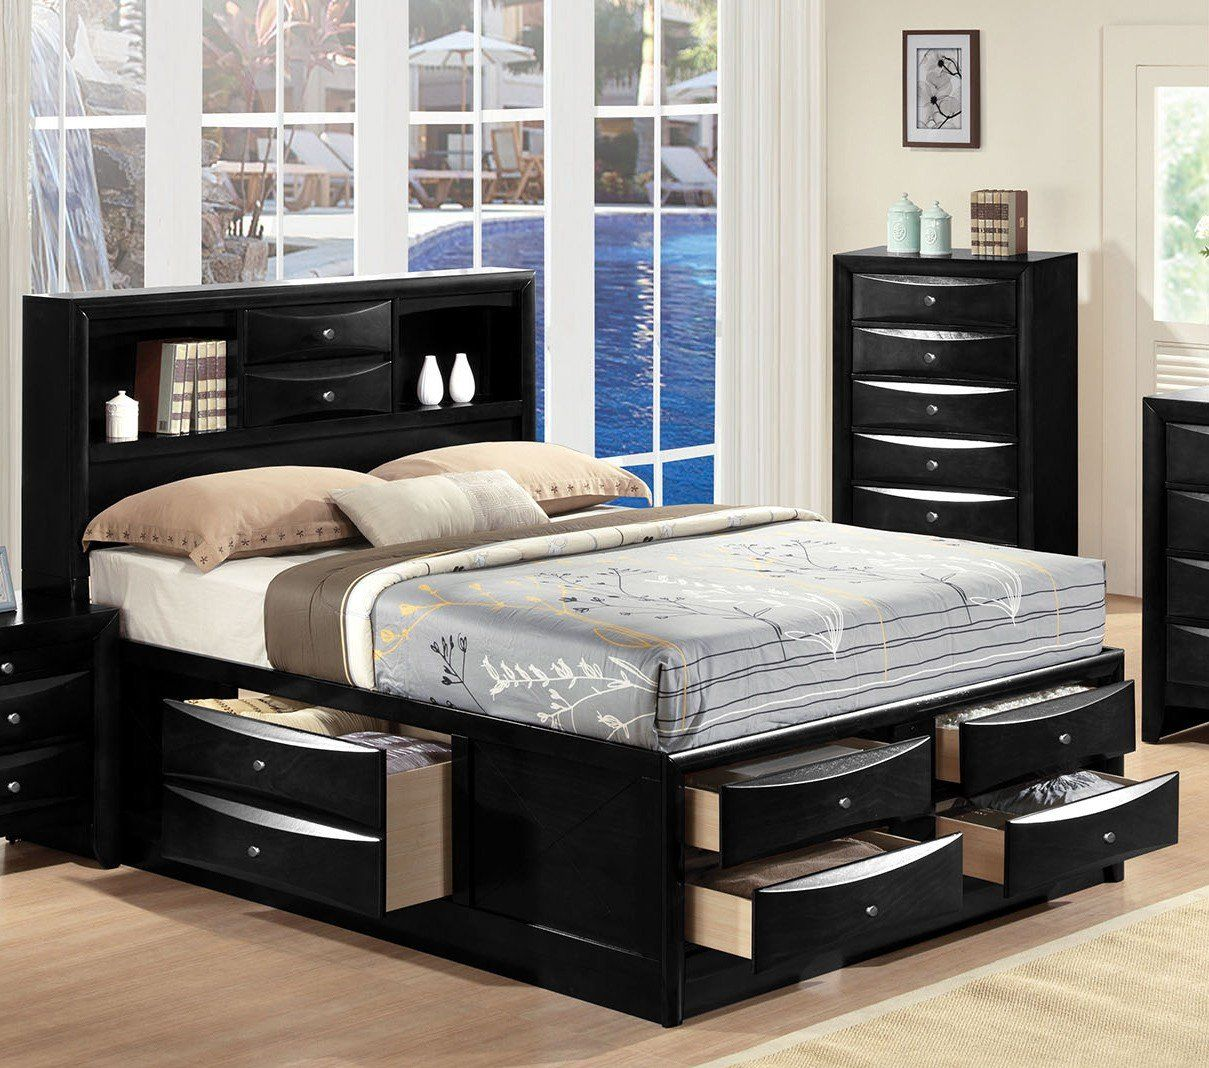 Brimnes Bed Frame With Storage Black King With Images Bed